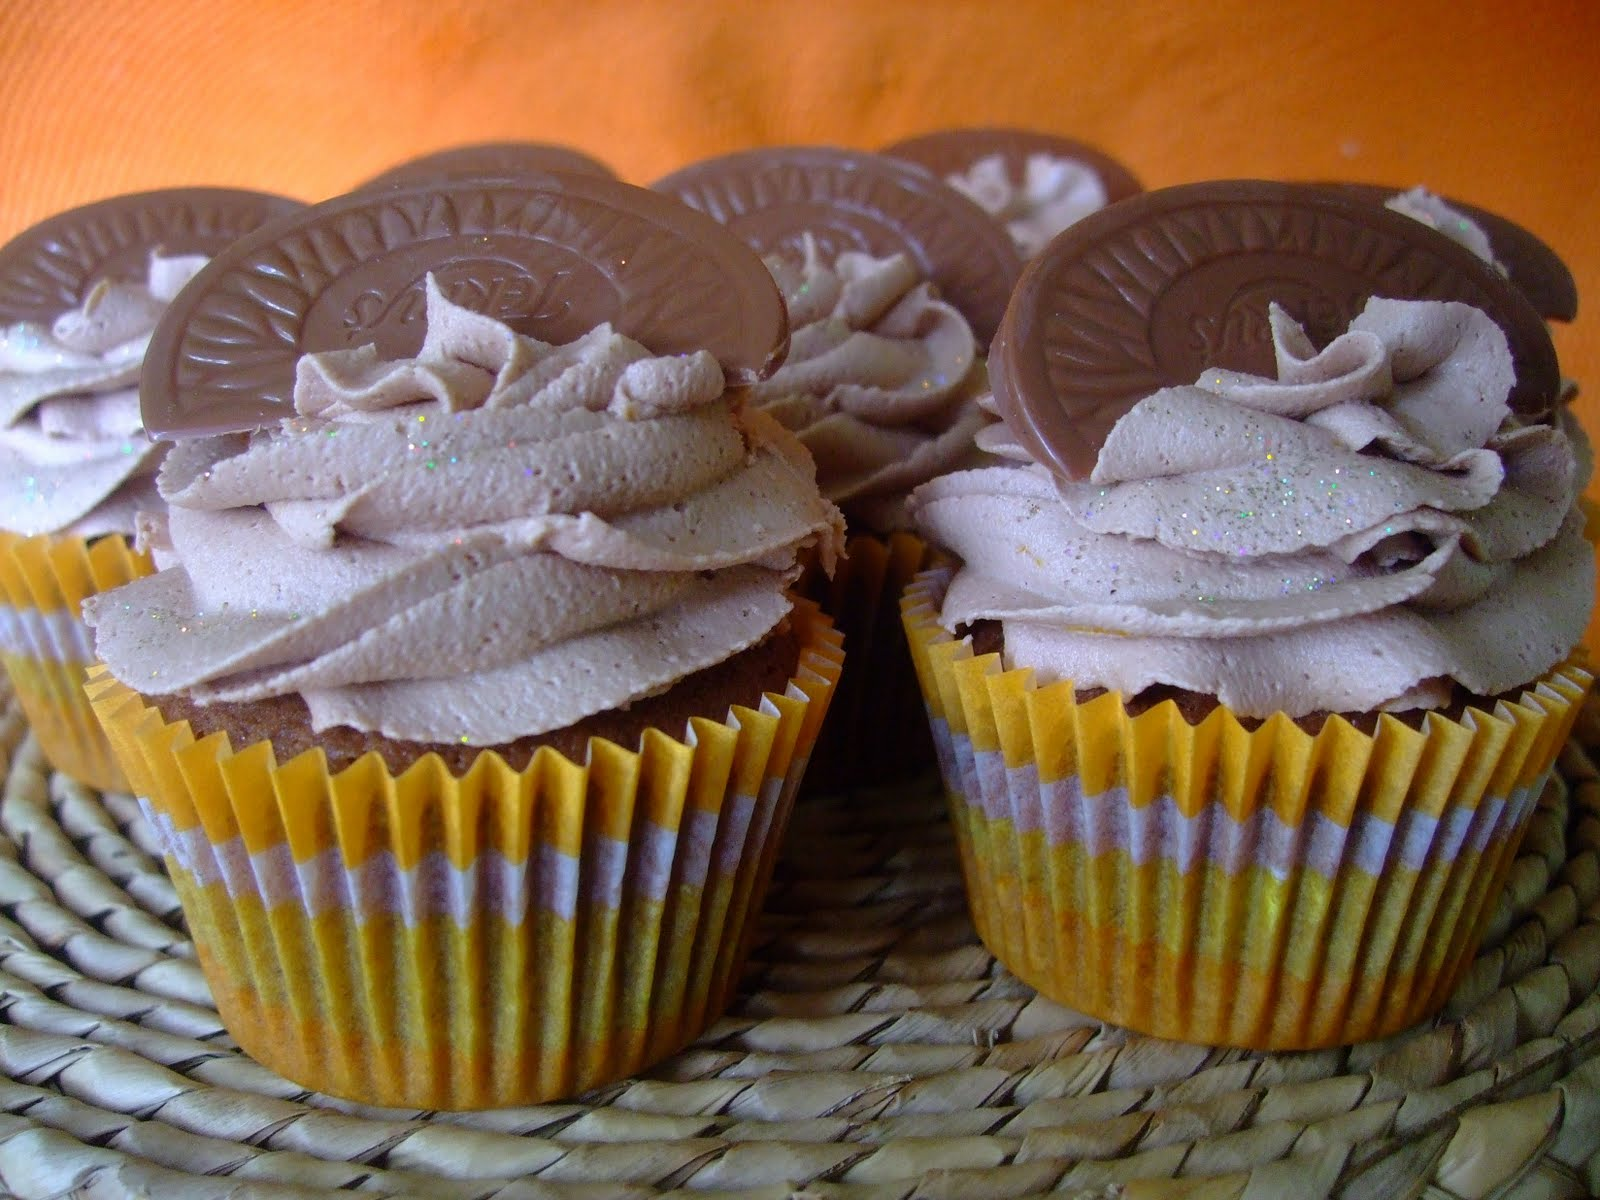 Colourful Cupcakes of Newbury: Chocolate Orange Cupcakes